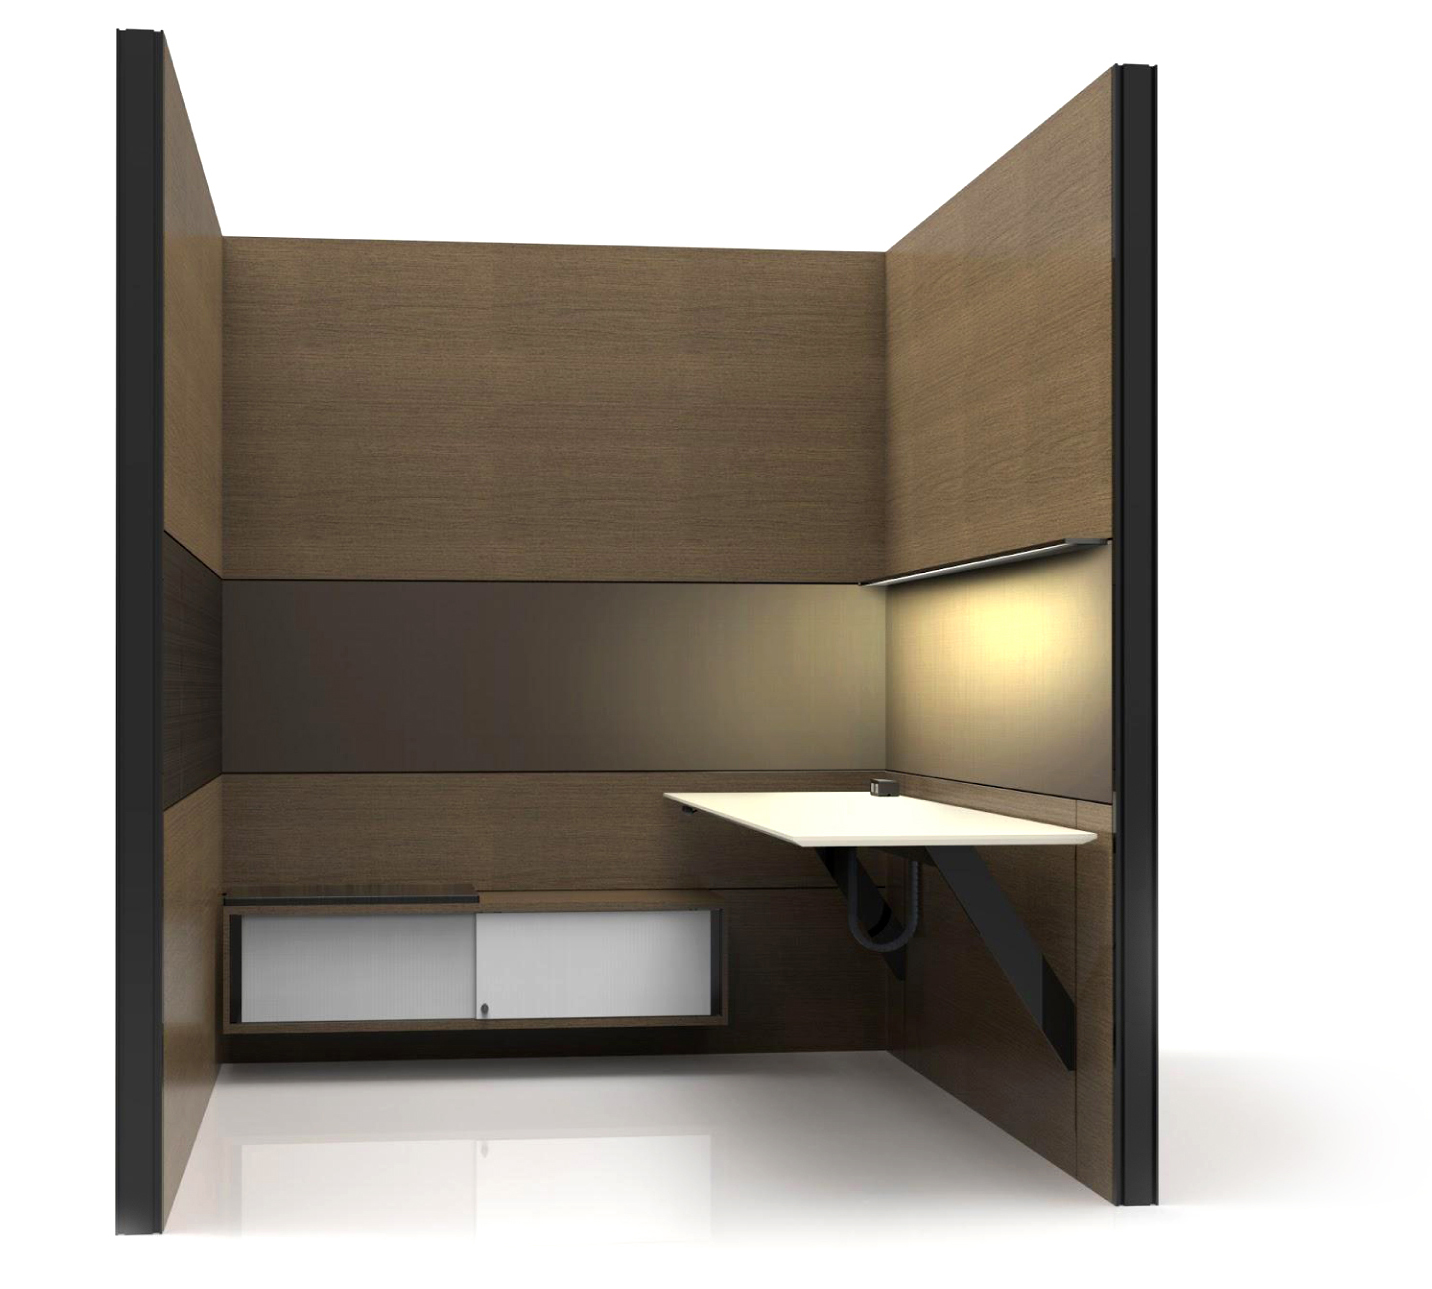 Altos cube room rendering with cubby.jpg